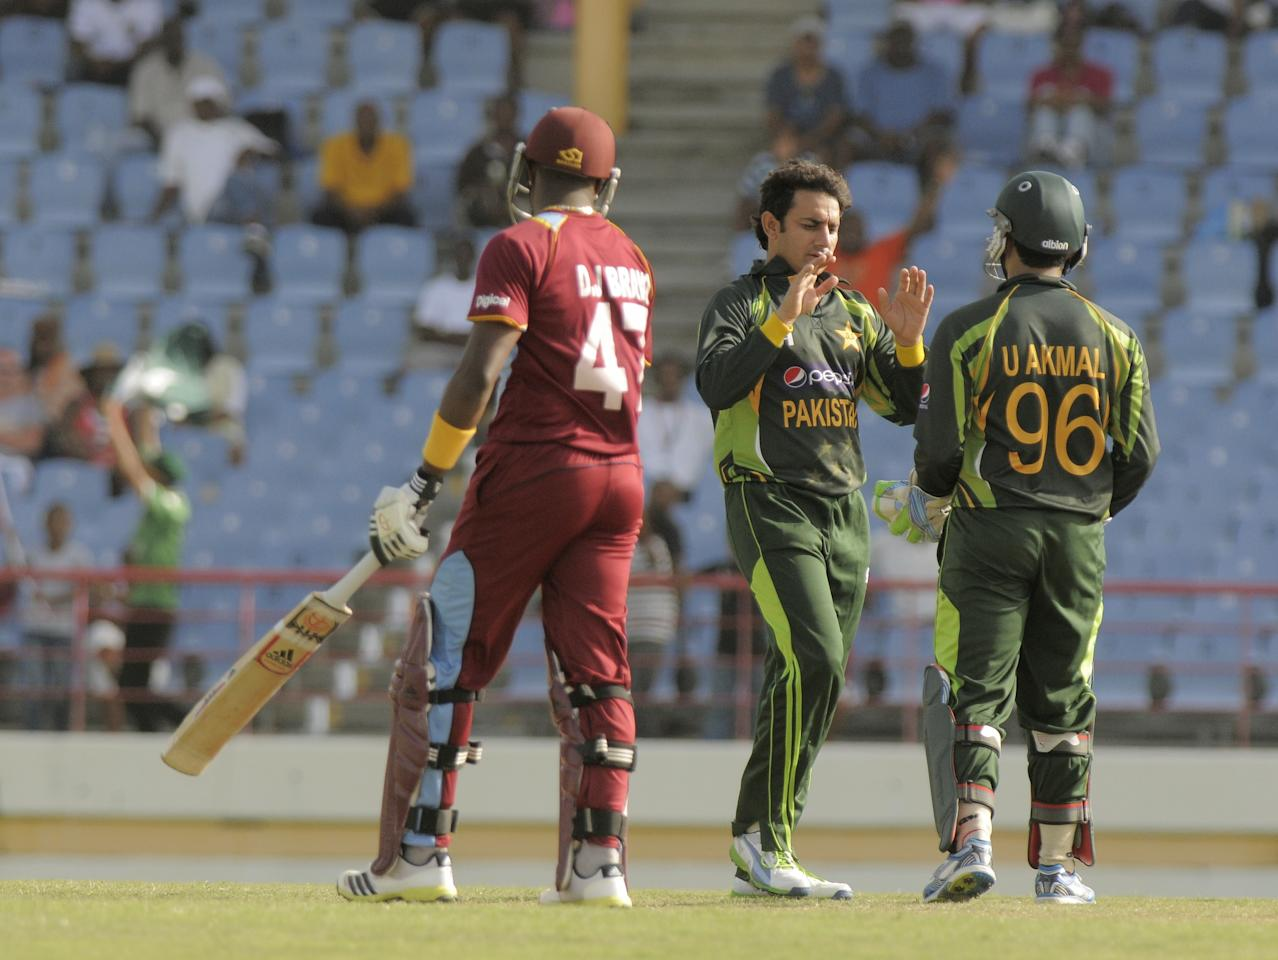 Pakistan bowler Saeed Ajmal (C) celebrates with Umar Akmal (R) the dismissal of West Indies batsman DJ Bravo (L) bowled for 17 runs, July 19, 2013 during the 3rd ODI West Indies v Pakistan at Beausejour Cricket Ground, St. Lucia. Score, Pakistan 229/6, West Indies 229/9, match tied.       AFP PHOTO / Randy Brooks        (Photo credit should read RANDY BROOKS/AFP/Getty Images)